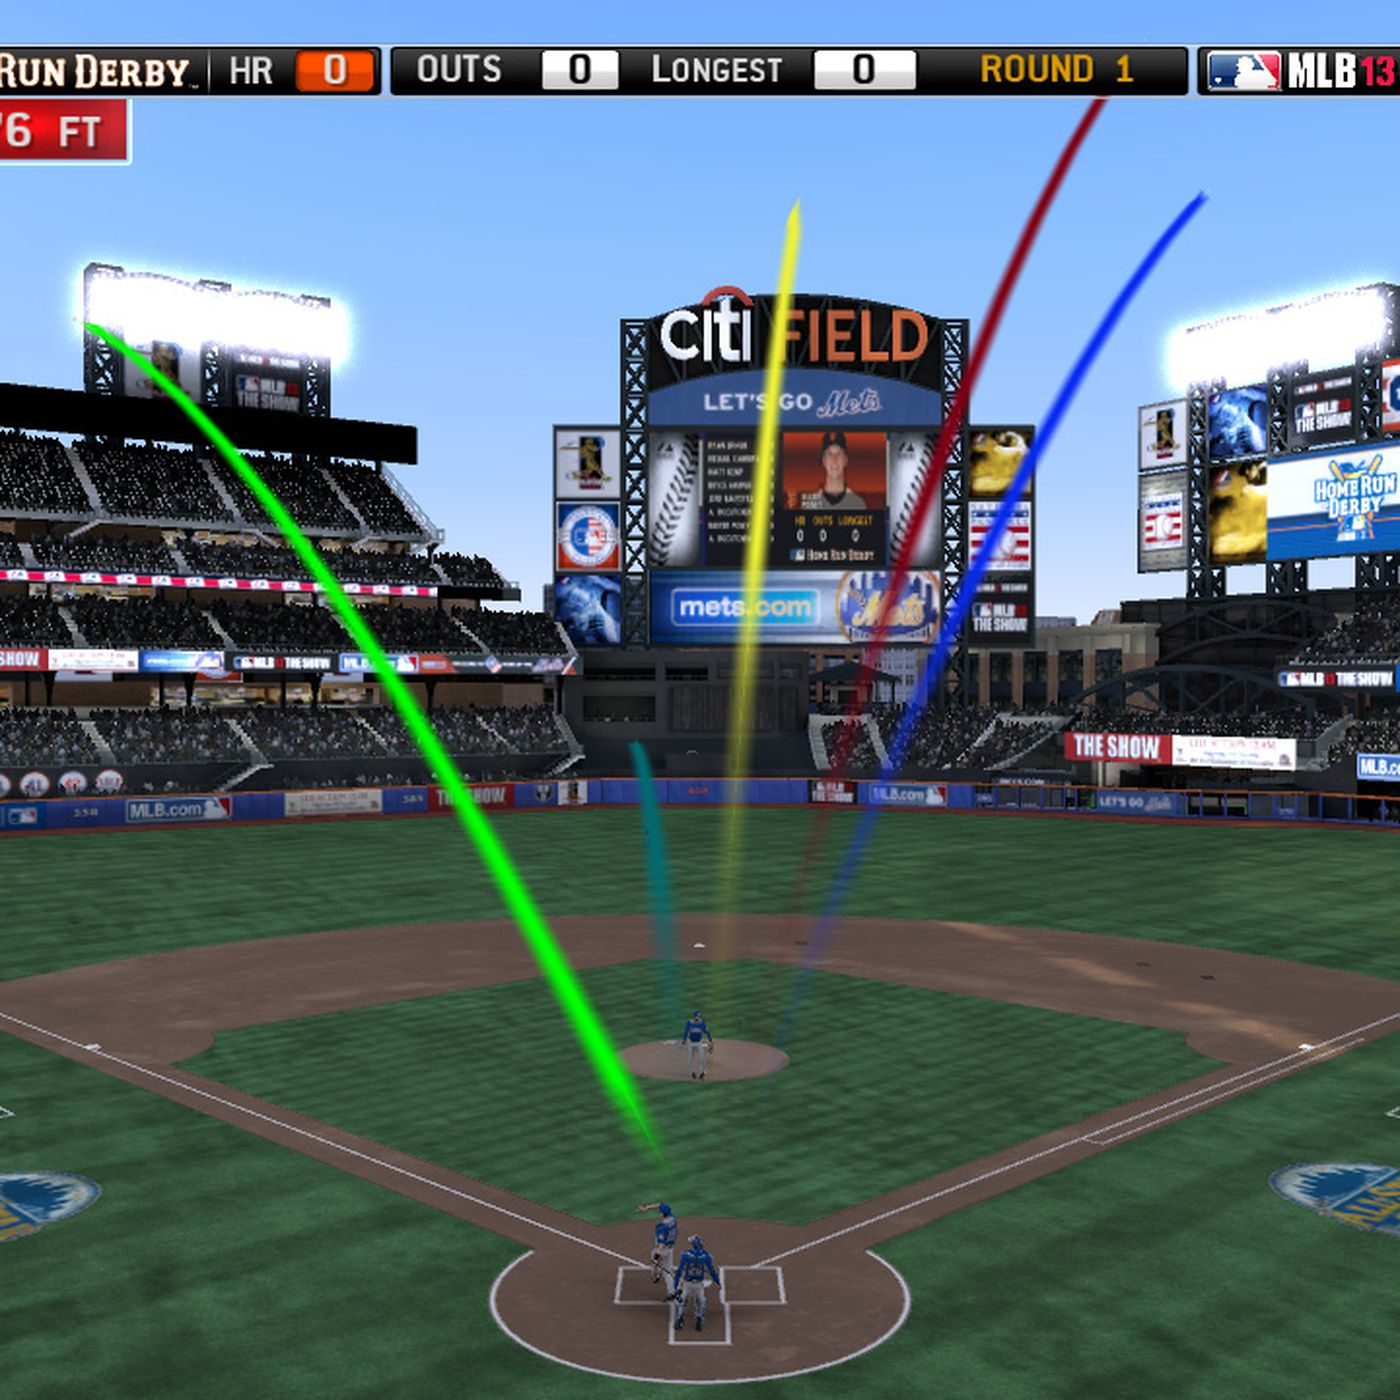 MLB 13 The Show's Home Run Derby mode playable across PS3